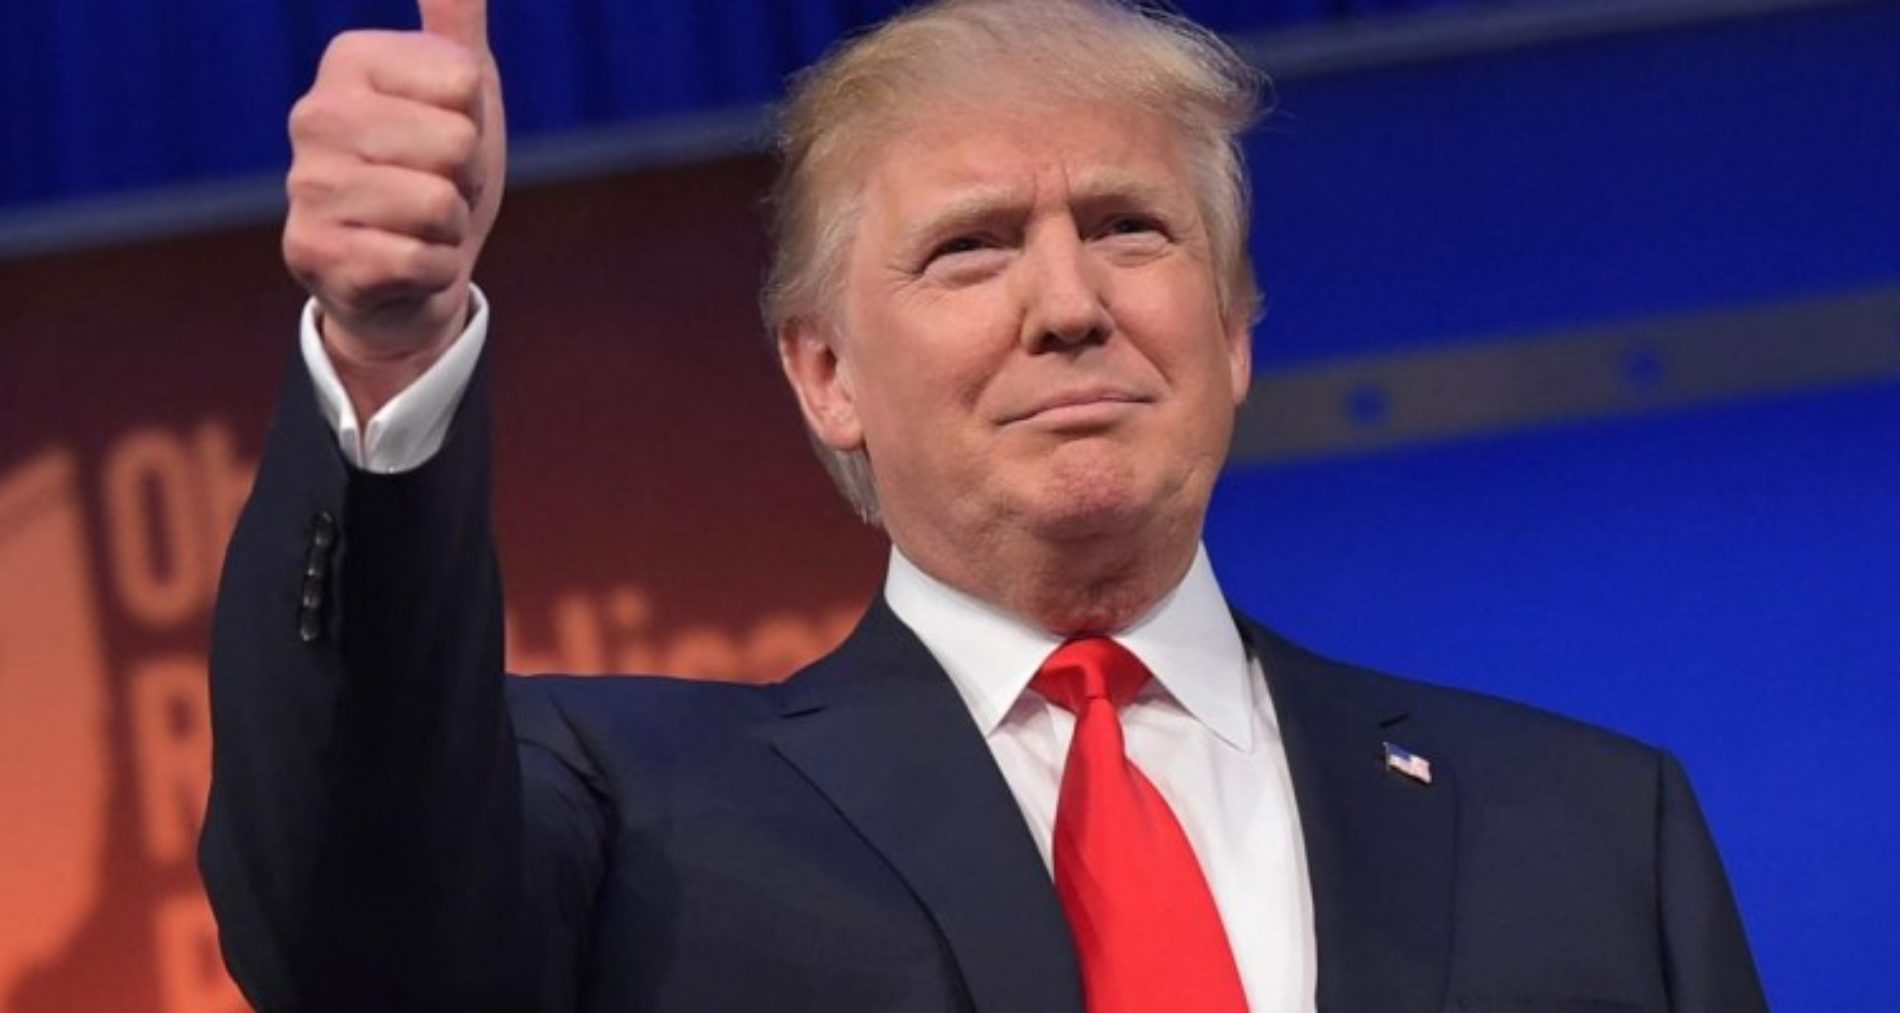 Donald Trump Wins The Presidency Of The United States